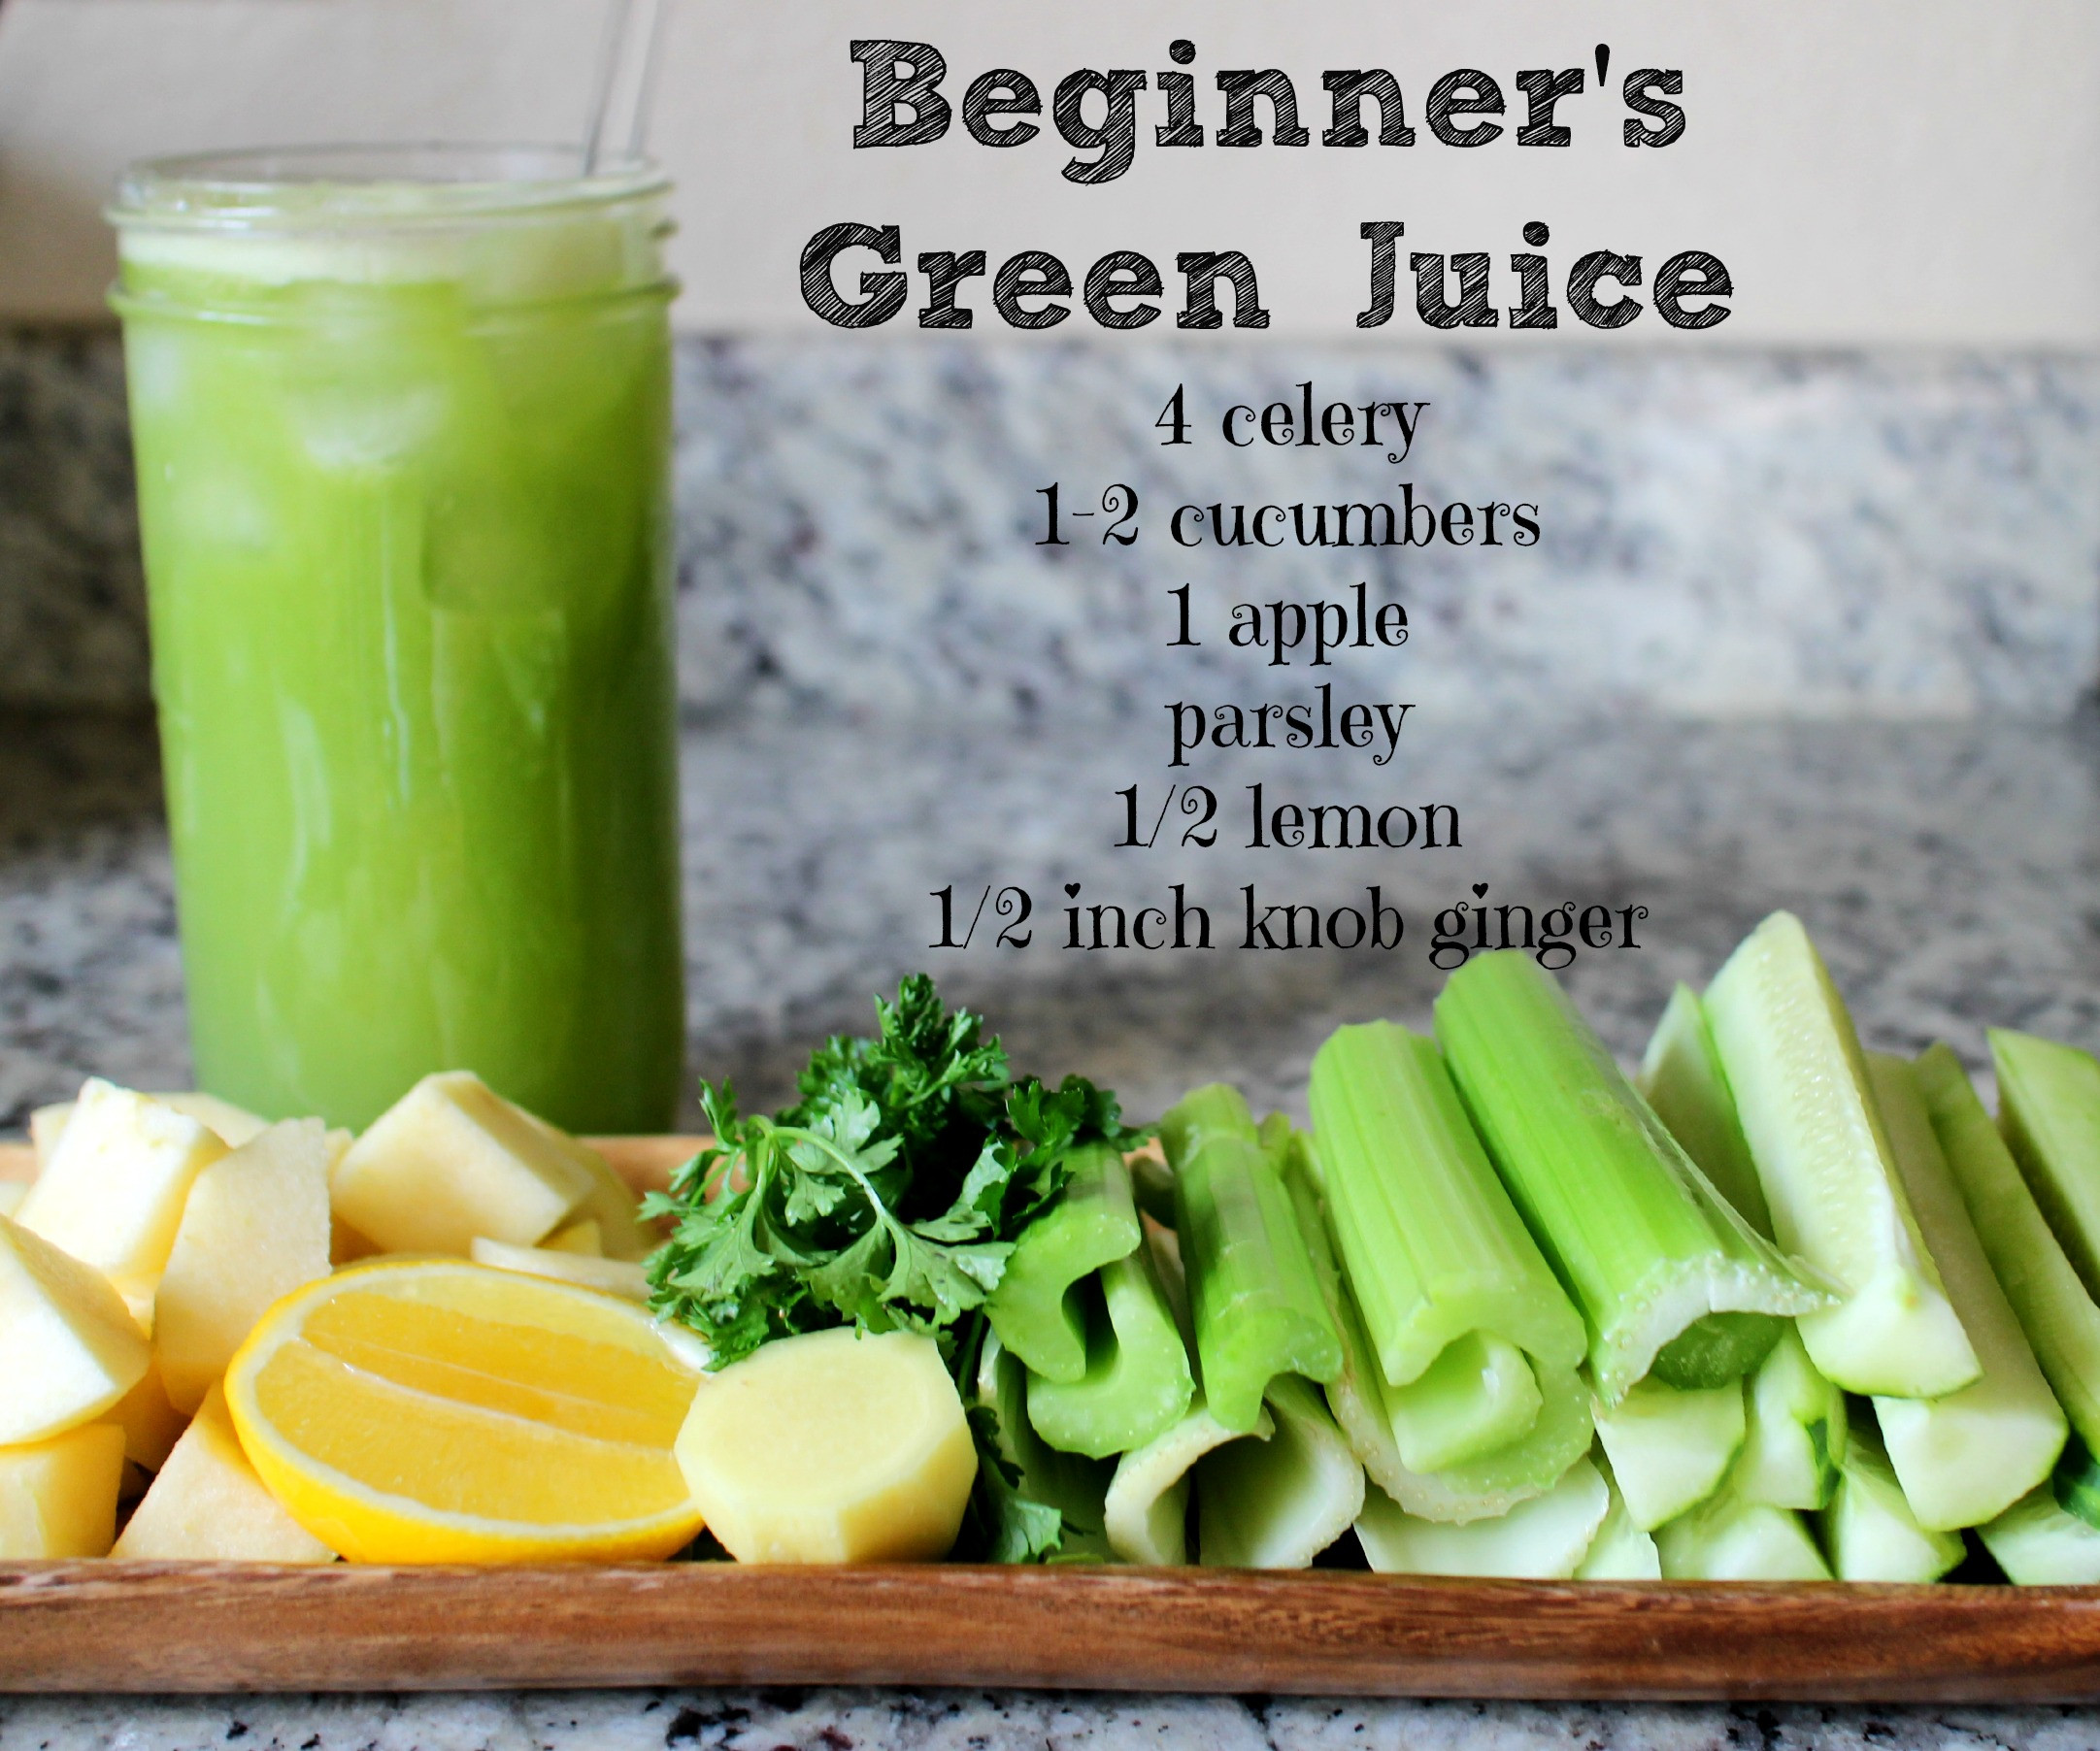 Healthy Juice Recipes  FREE Juicing Guide for Beginners Ultimate Guide